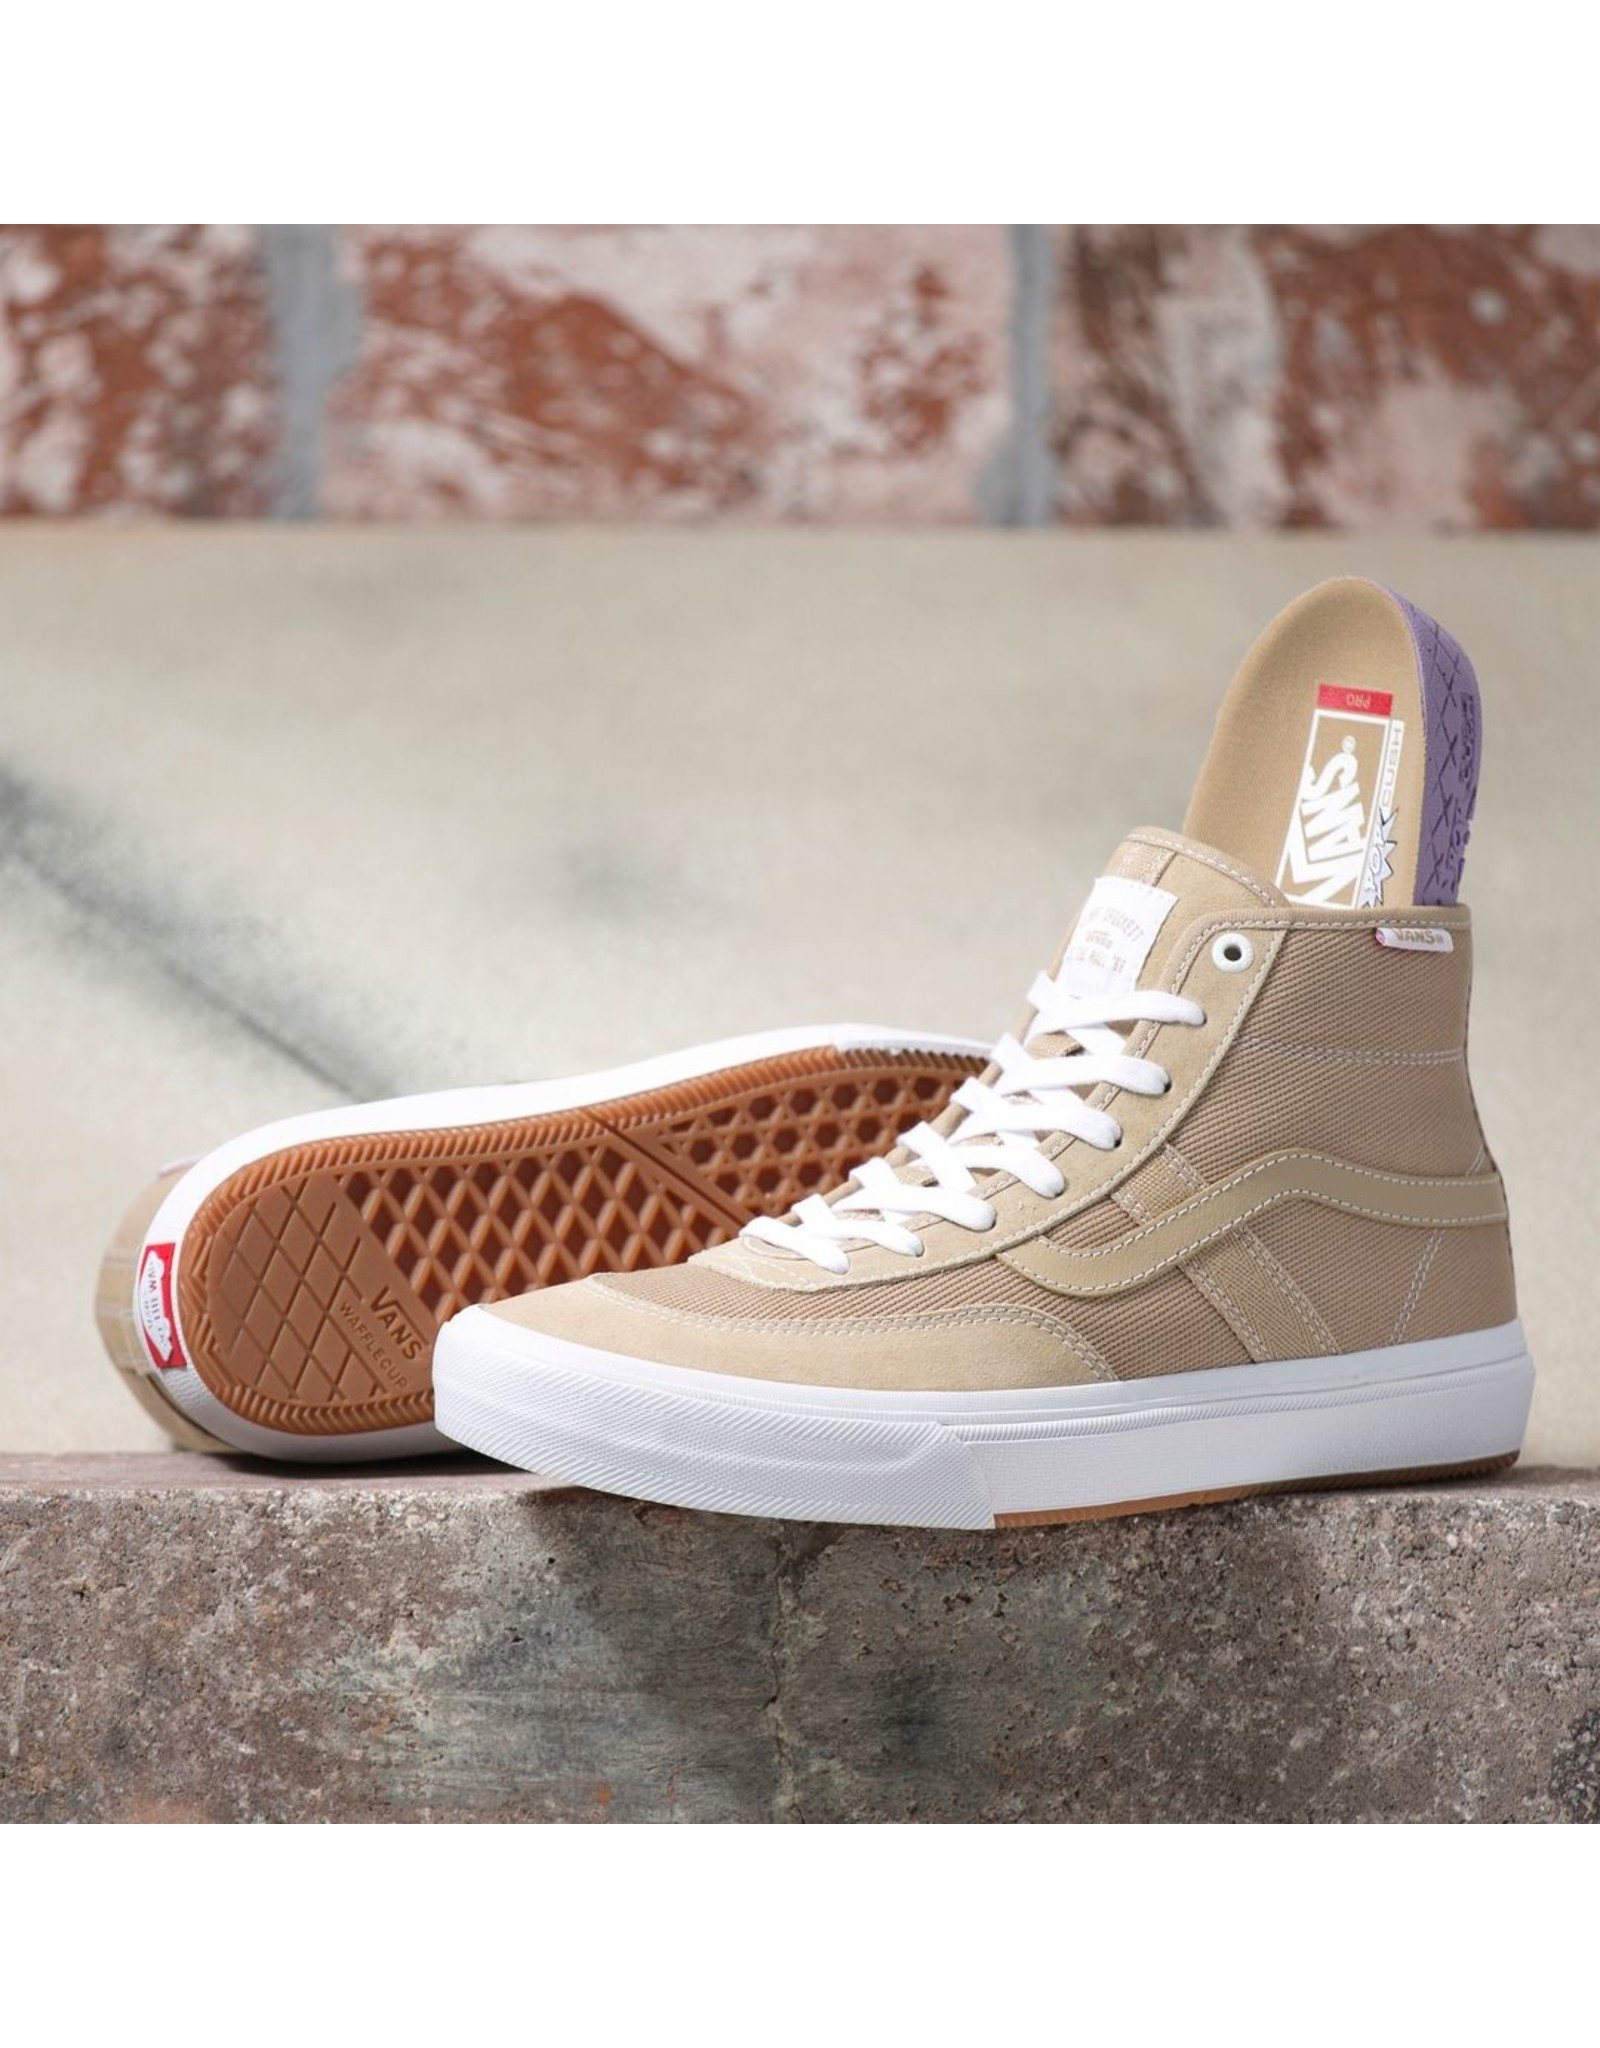 VANS VANS - CROCKETT PRO HI - INCEN/WHITE